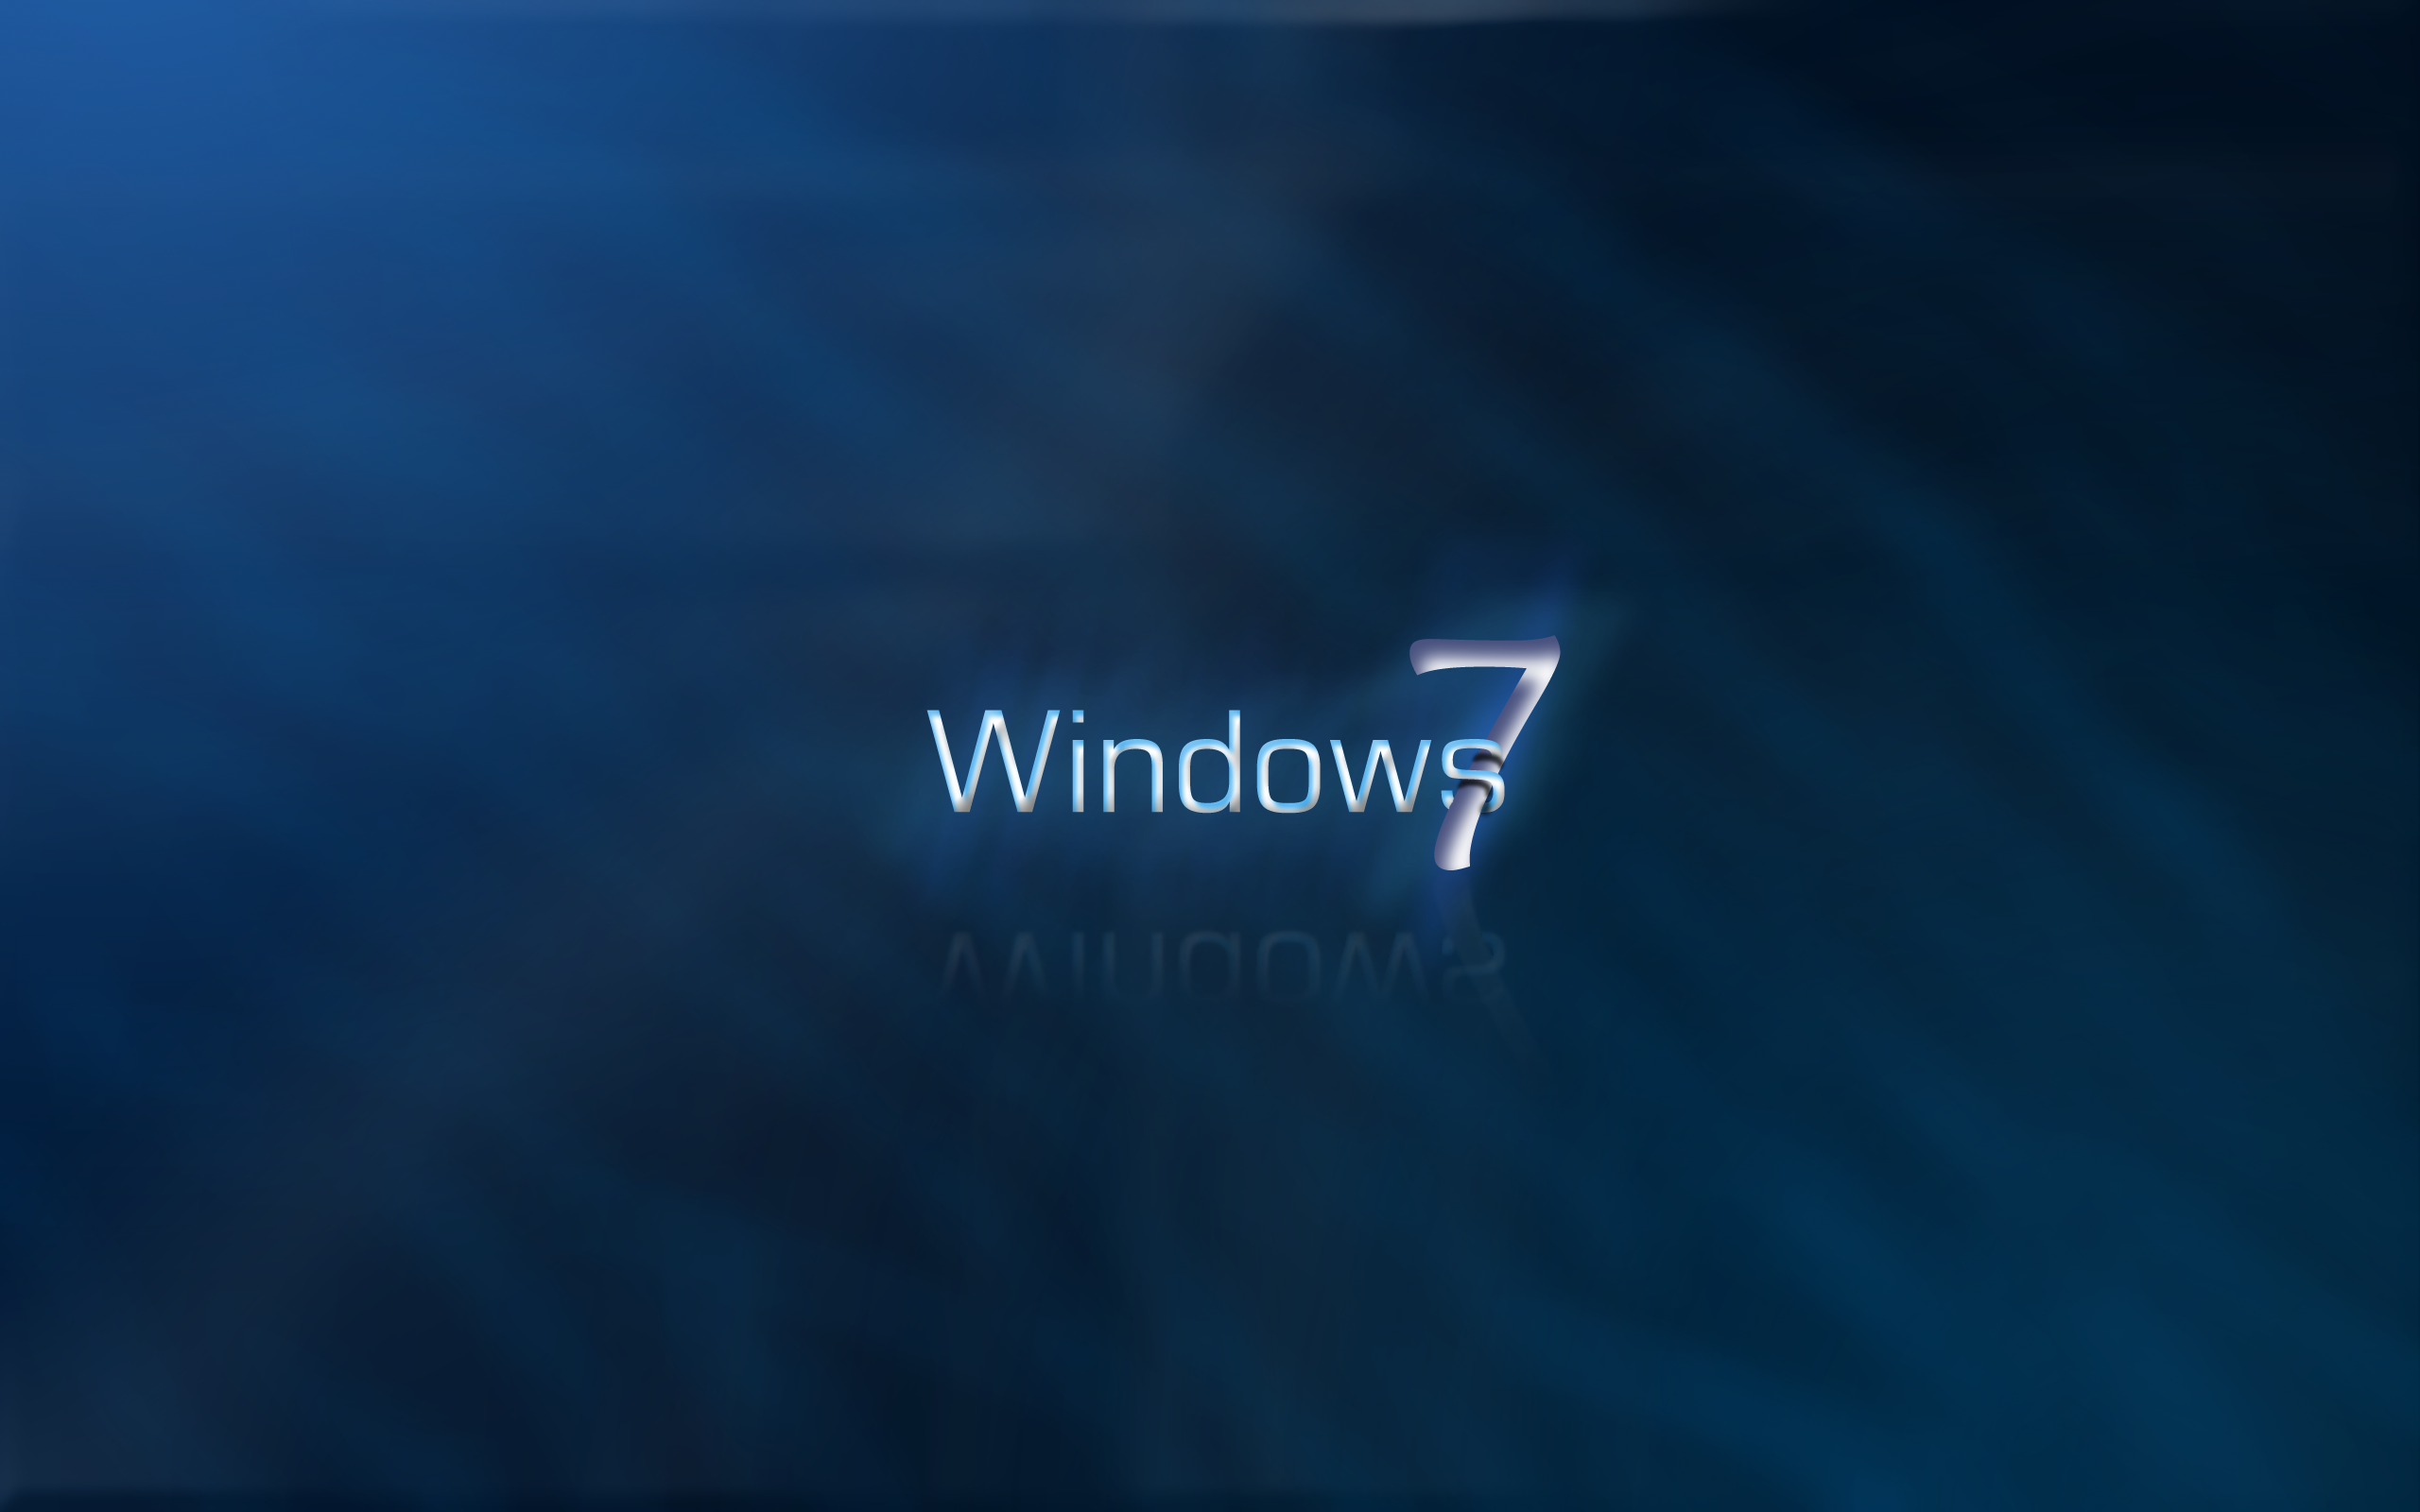 To buy new Windows 7 at great price check this out 2560x1600